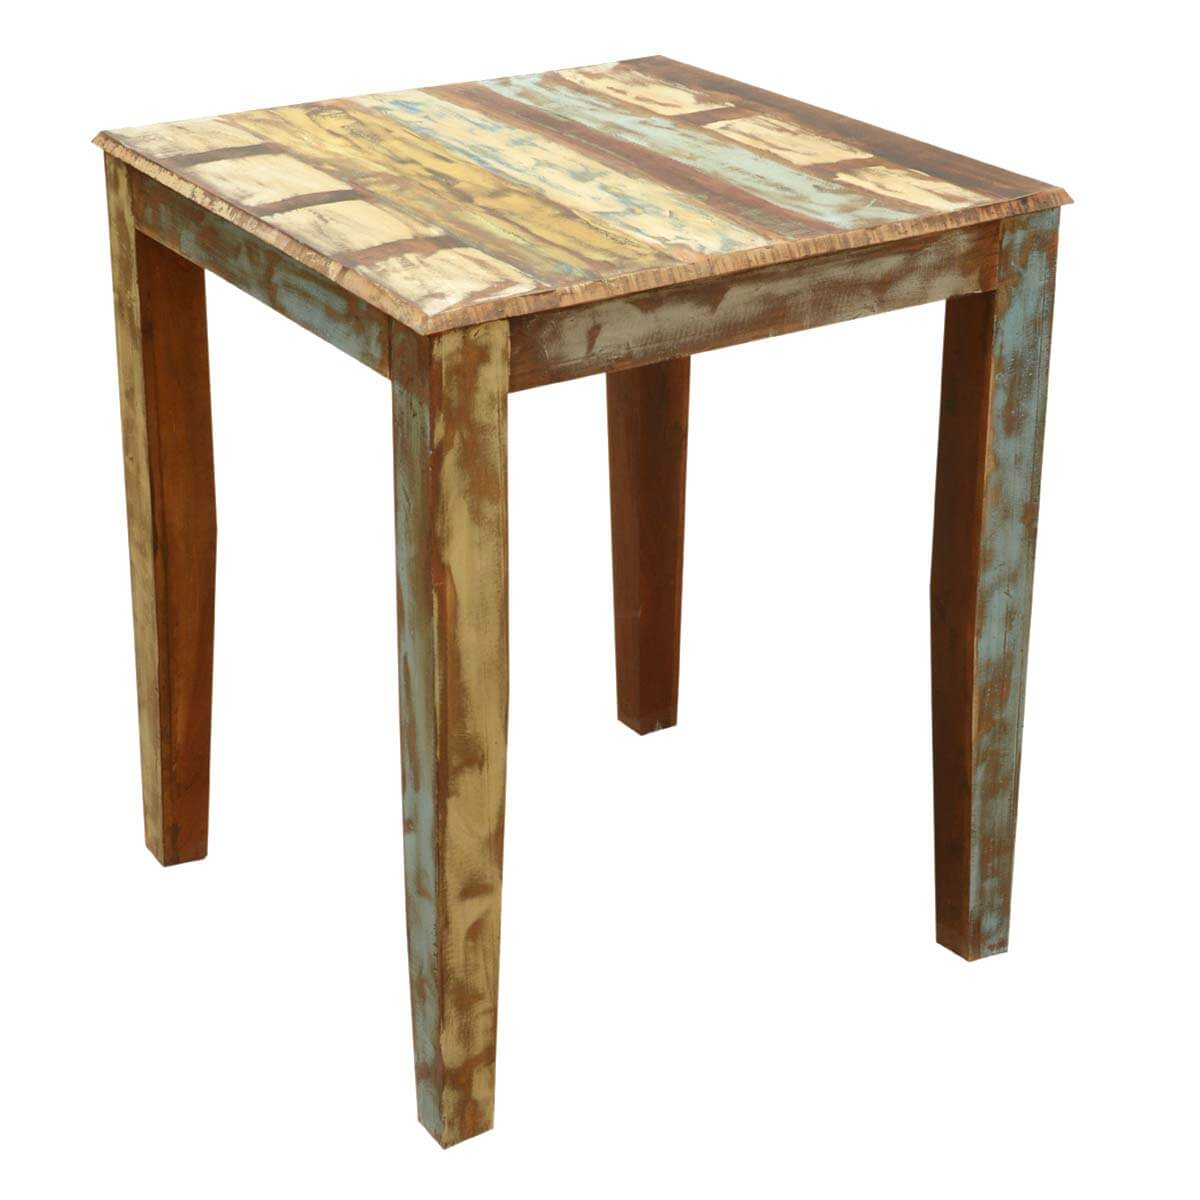 high bar table and chair set mexican painted chairs appalachian rustic reclaimed wood